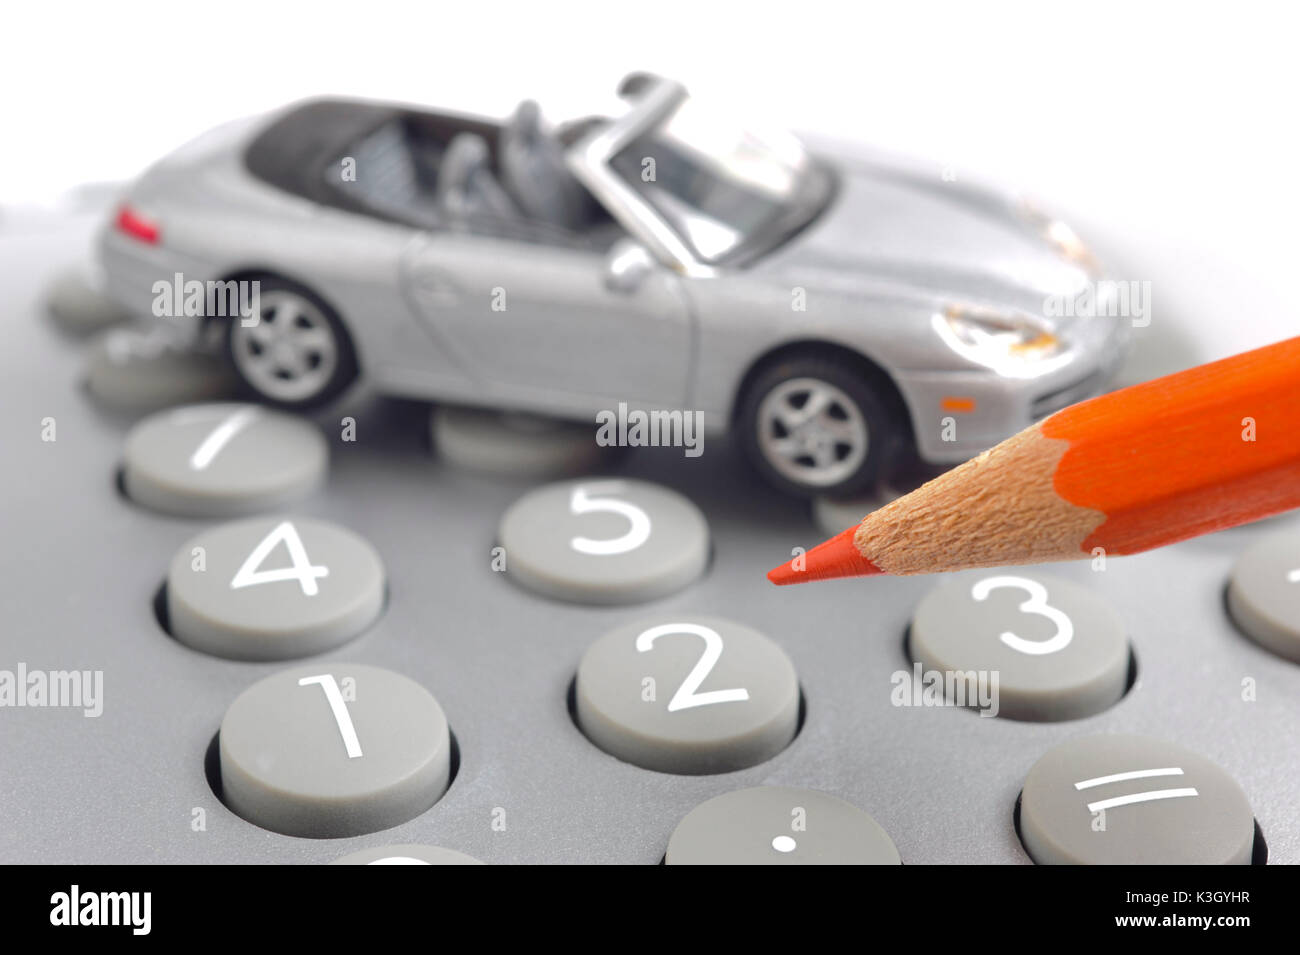 model car electronic calculator and red pen as an icon for rising